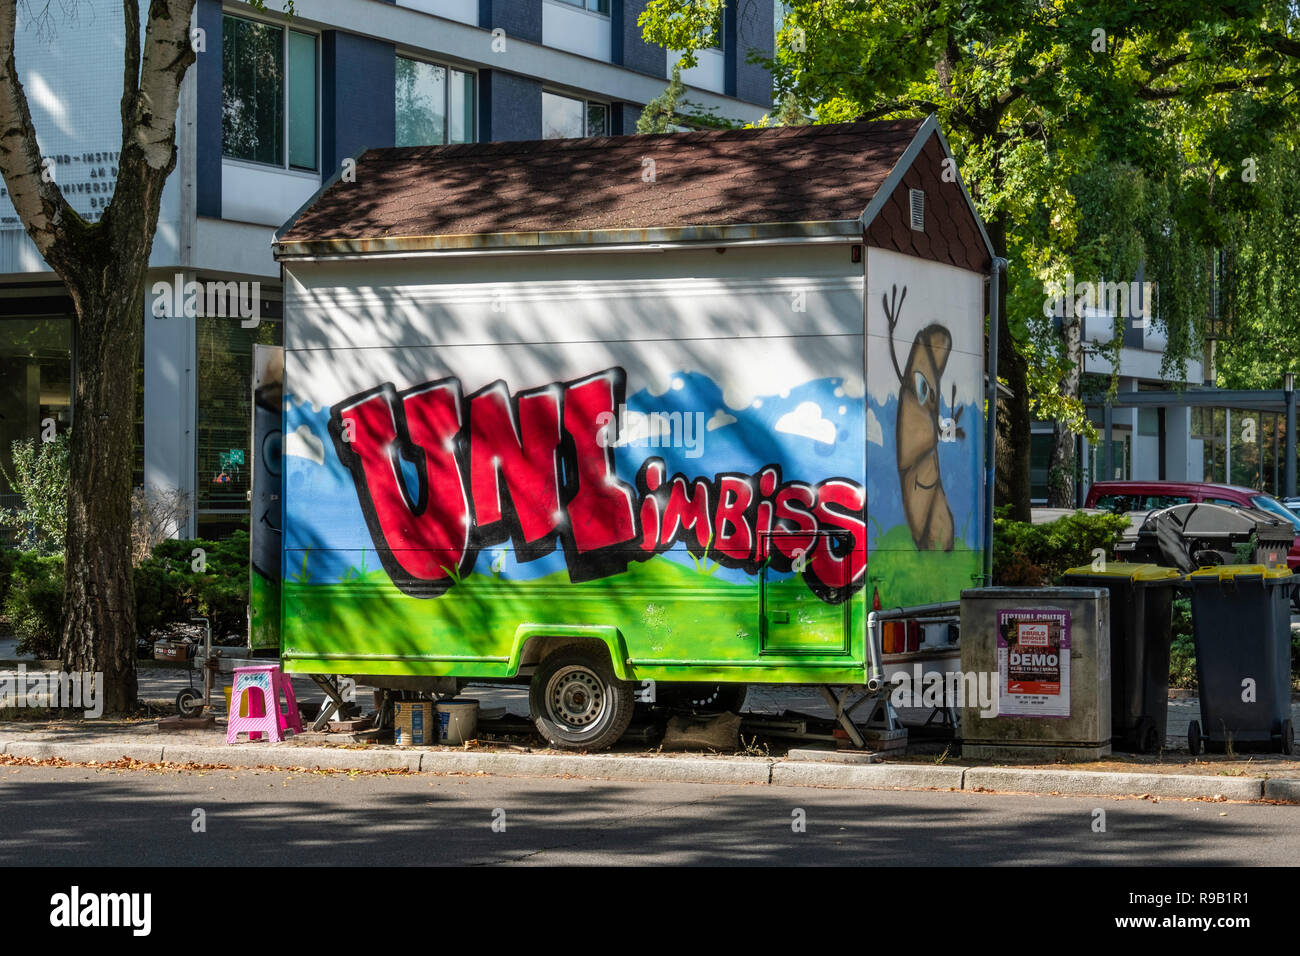 Berlin Dahlem, Uni Imbiss, snack stall on wheels selling snacks in a shady street - Stock Image